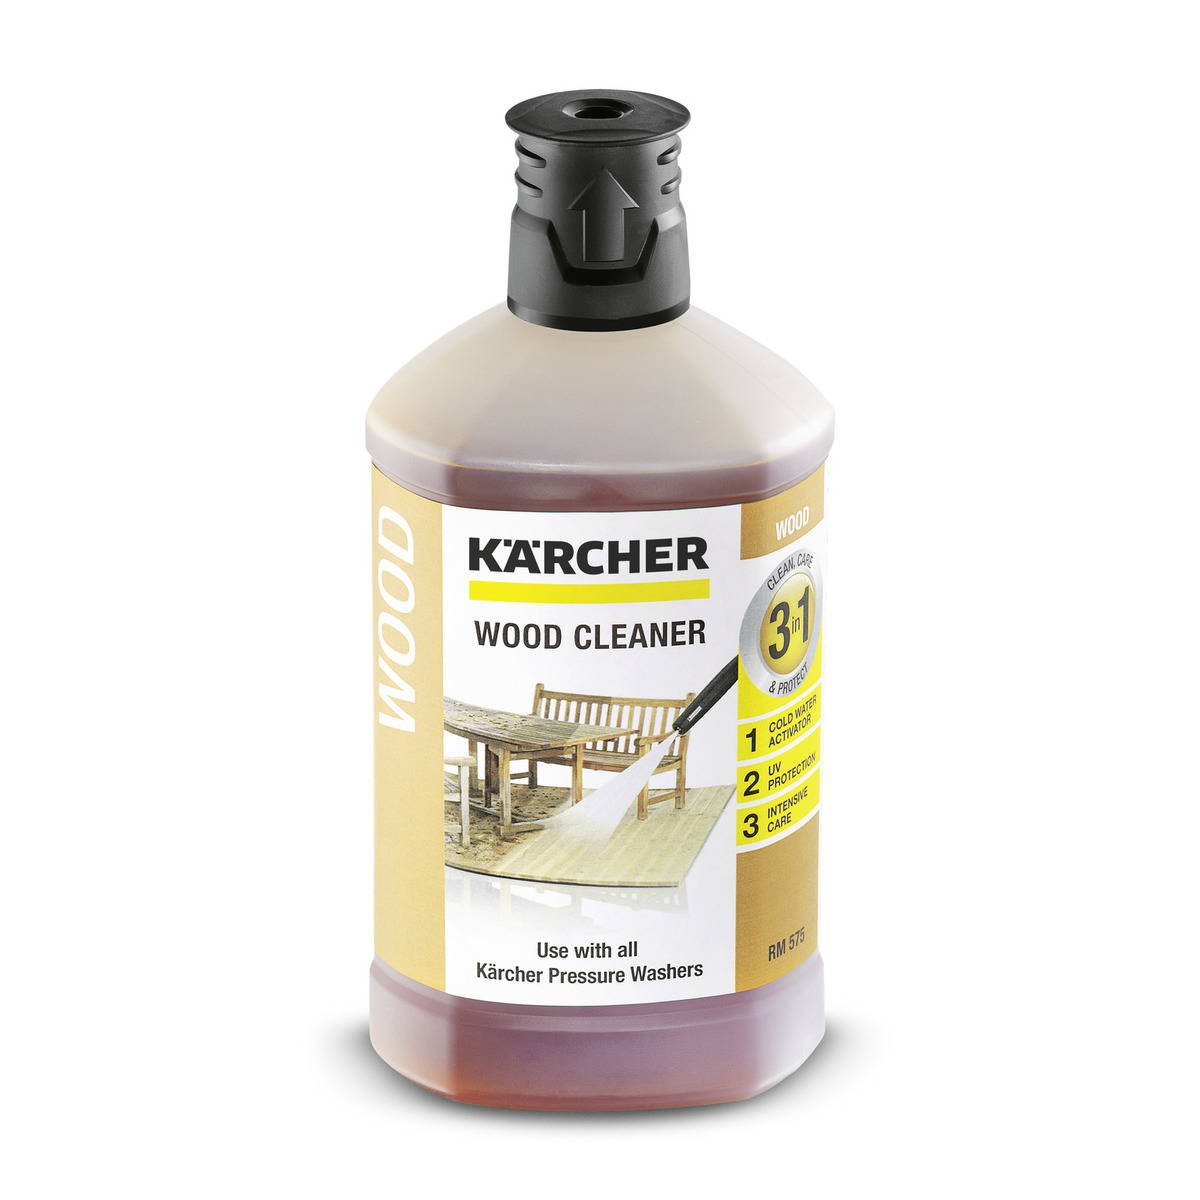 Karcher wood cleaner